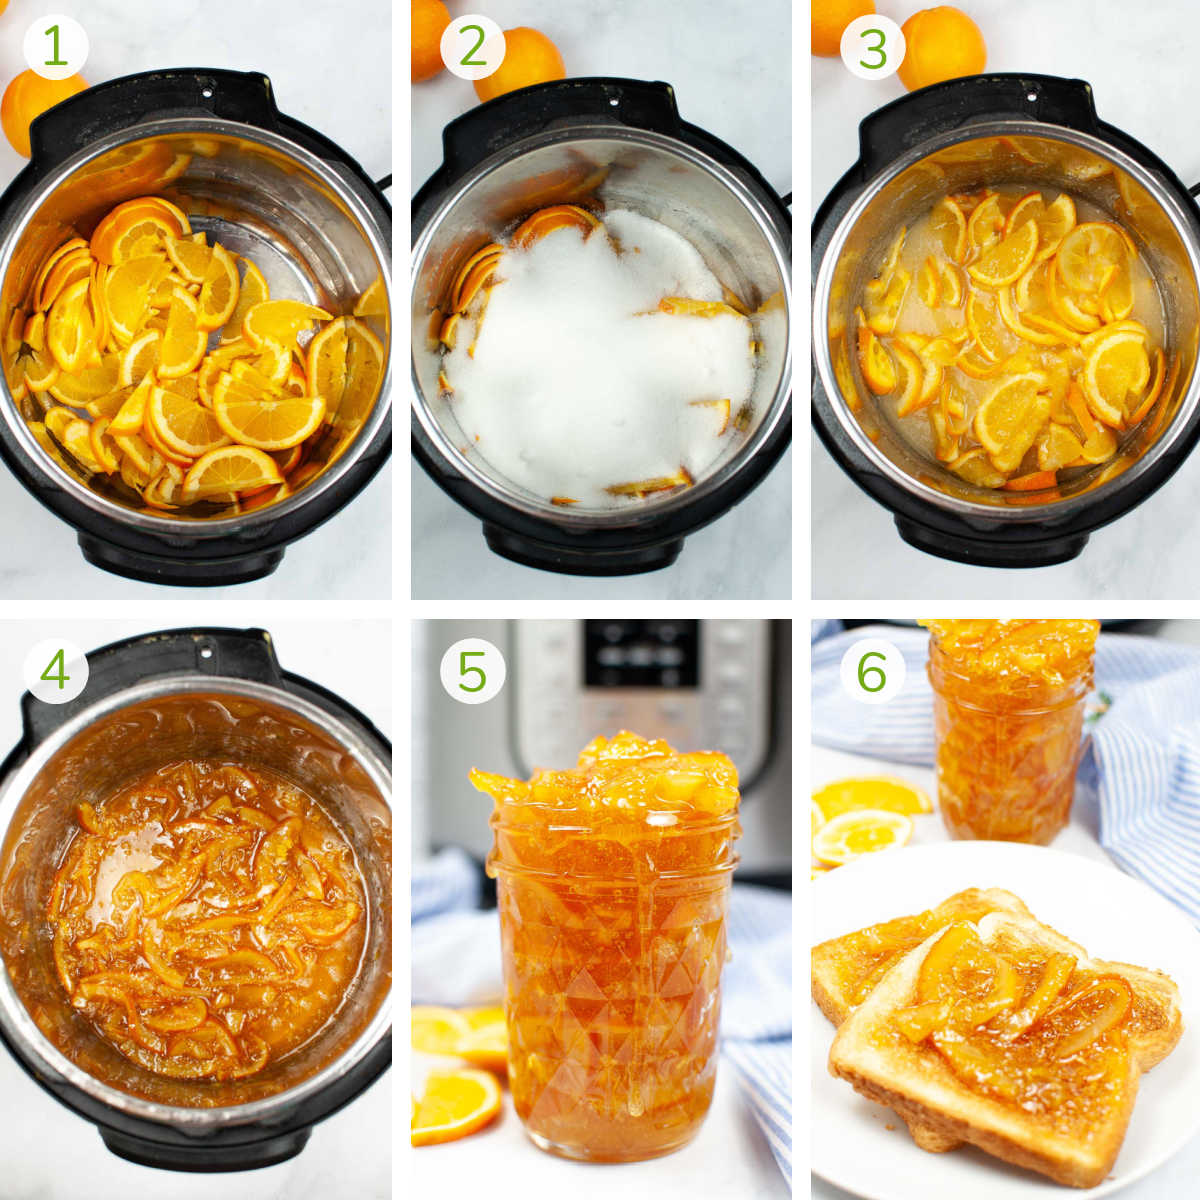 process photos showing how to fill the instant pot with the ingredients and then storing it in a glass jar.